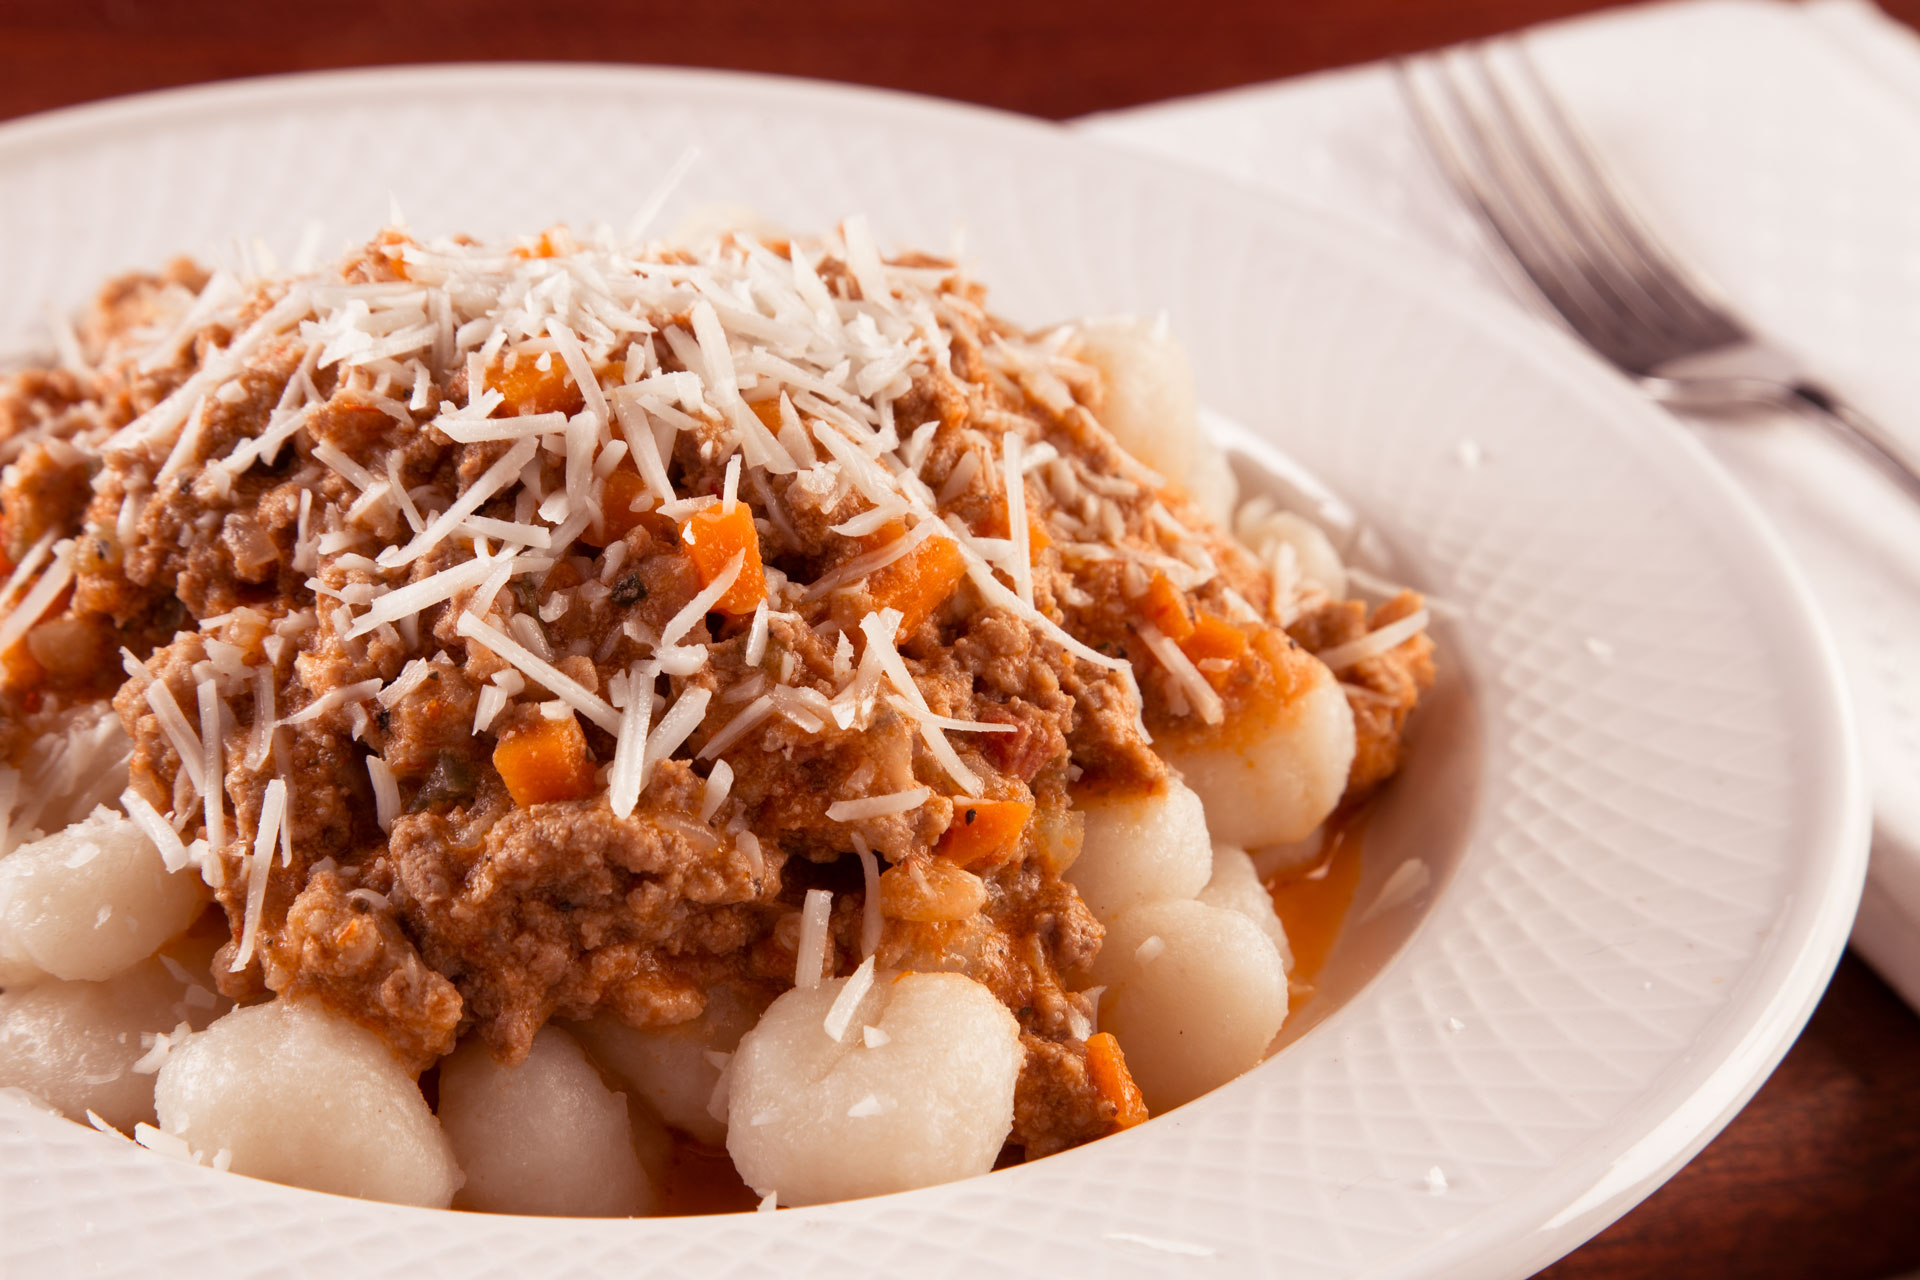 Gnocchi with Bolognese Sauce takes just a few steps to make, and makes your kitchen smell amazing!